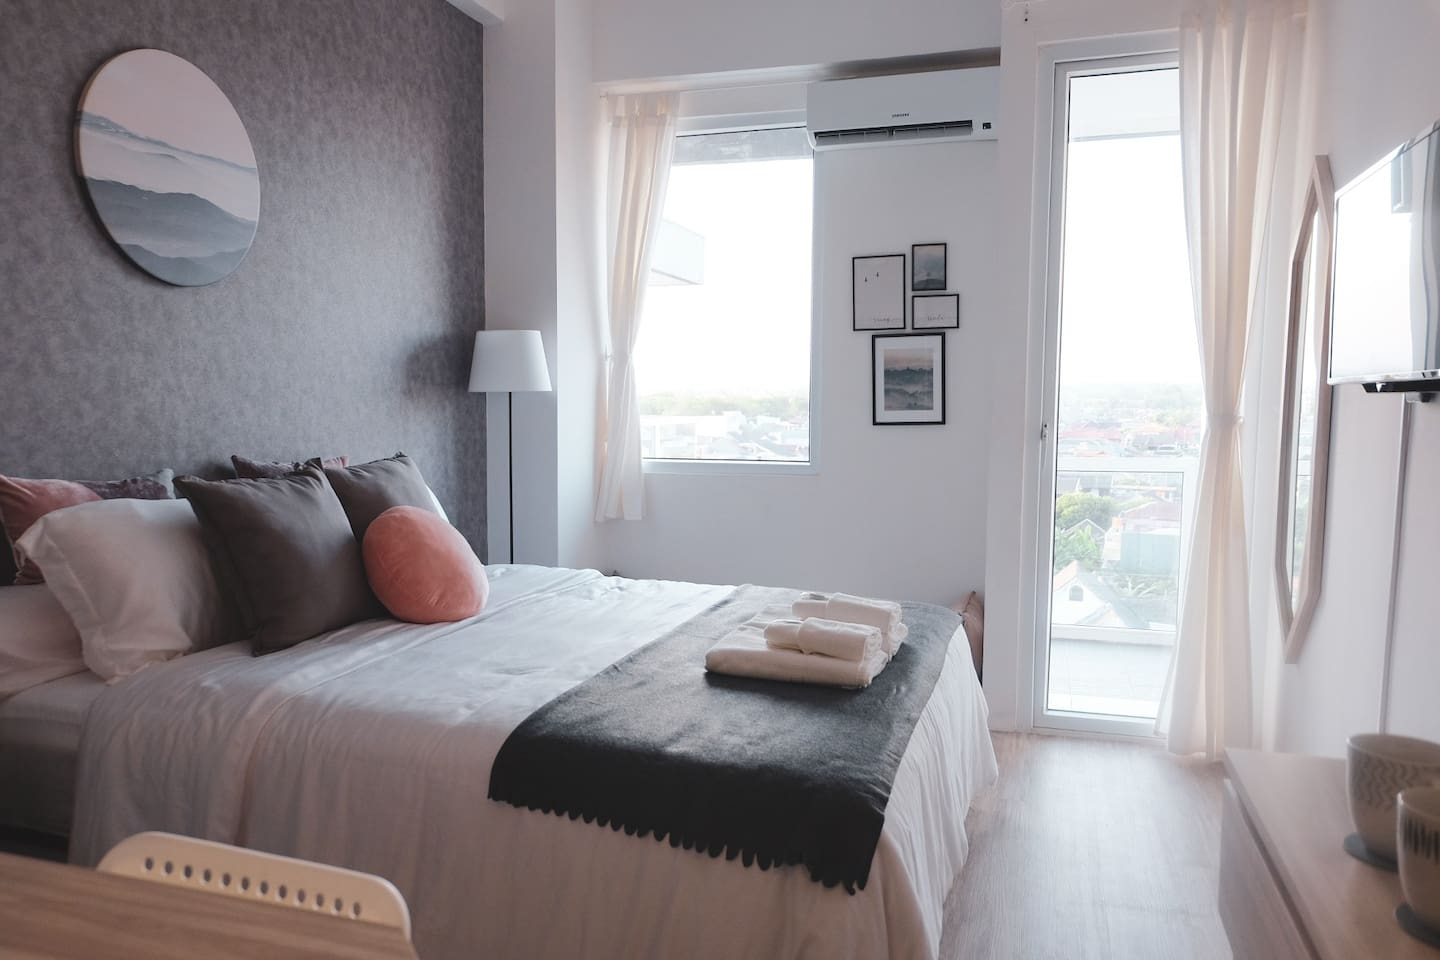 During daytime, natural light brightens the room